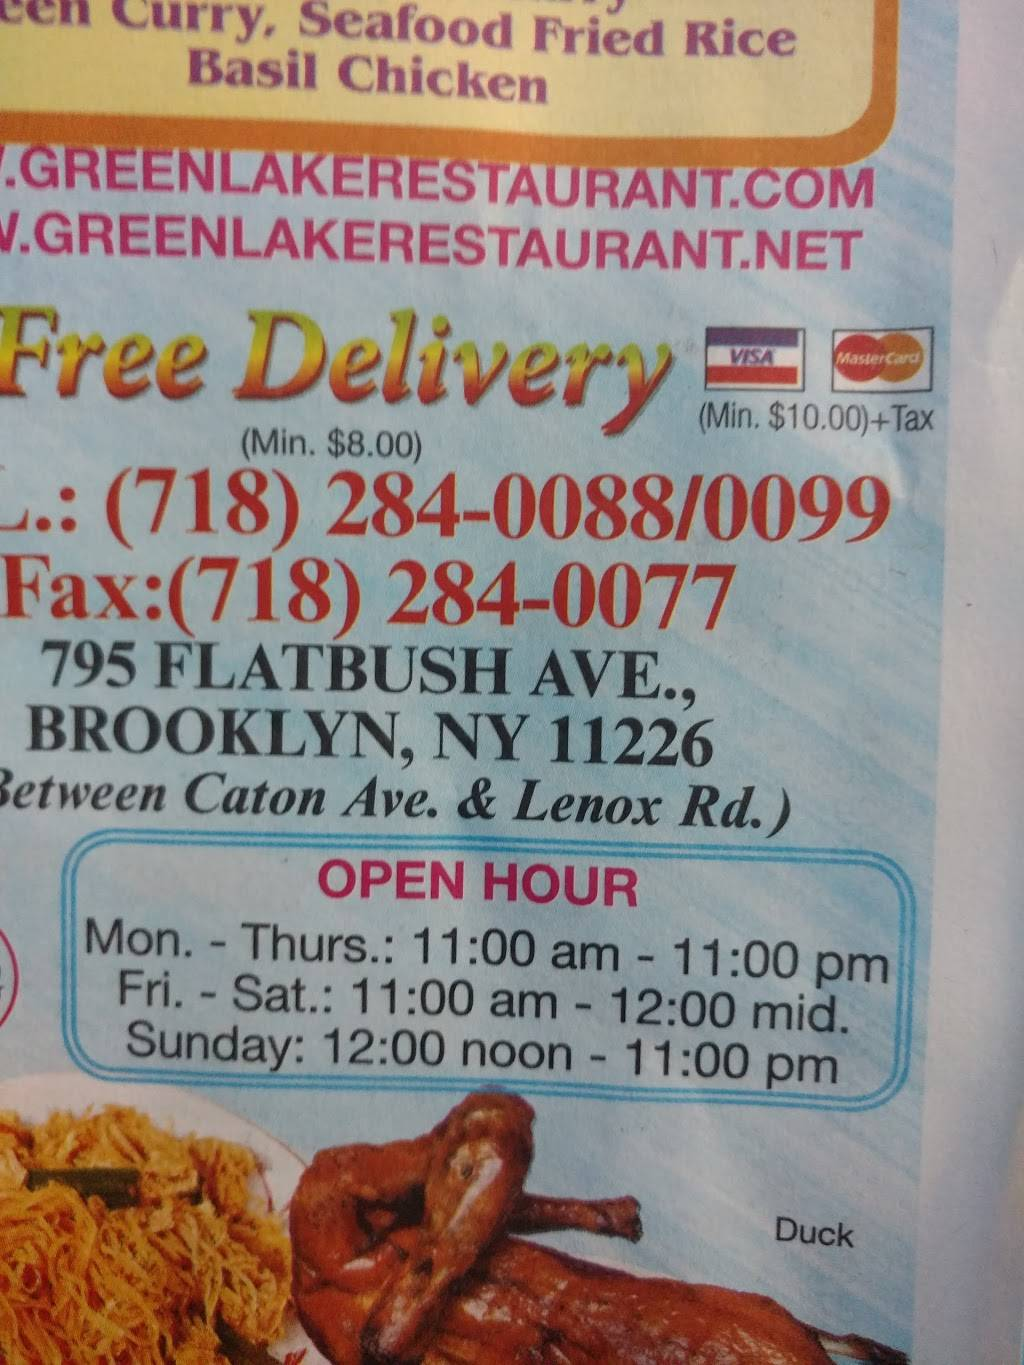 Green Lake   meal delivery   1903, 795 Flatbush Ave, Brooklyn, NY 11226, USA   7182840088 OR +1 718-284-0088